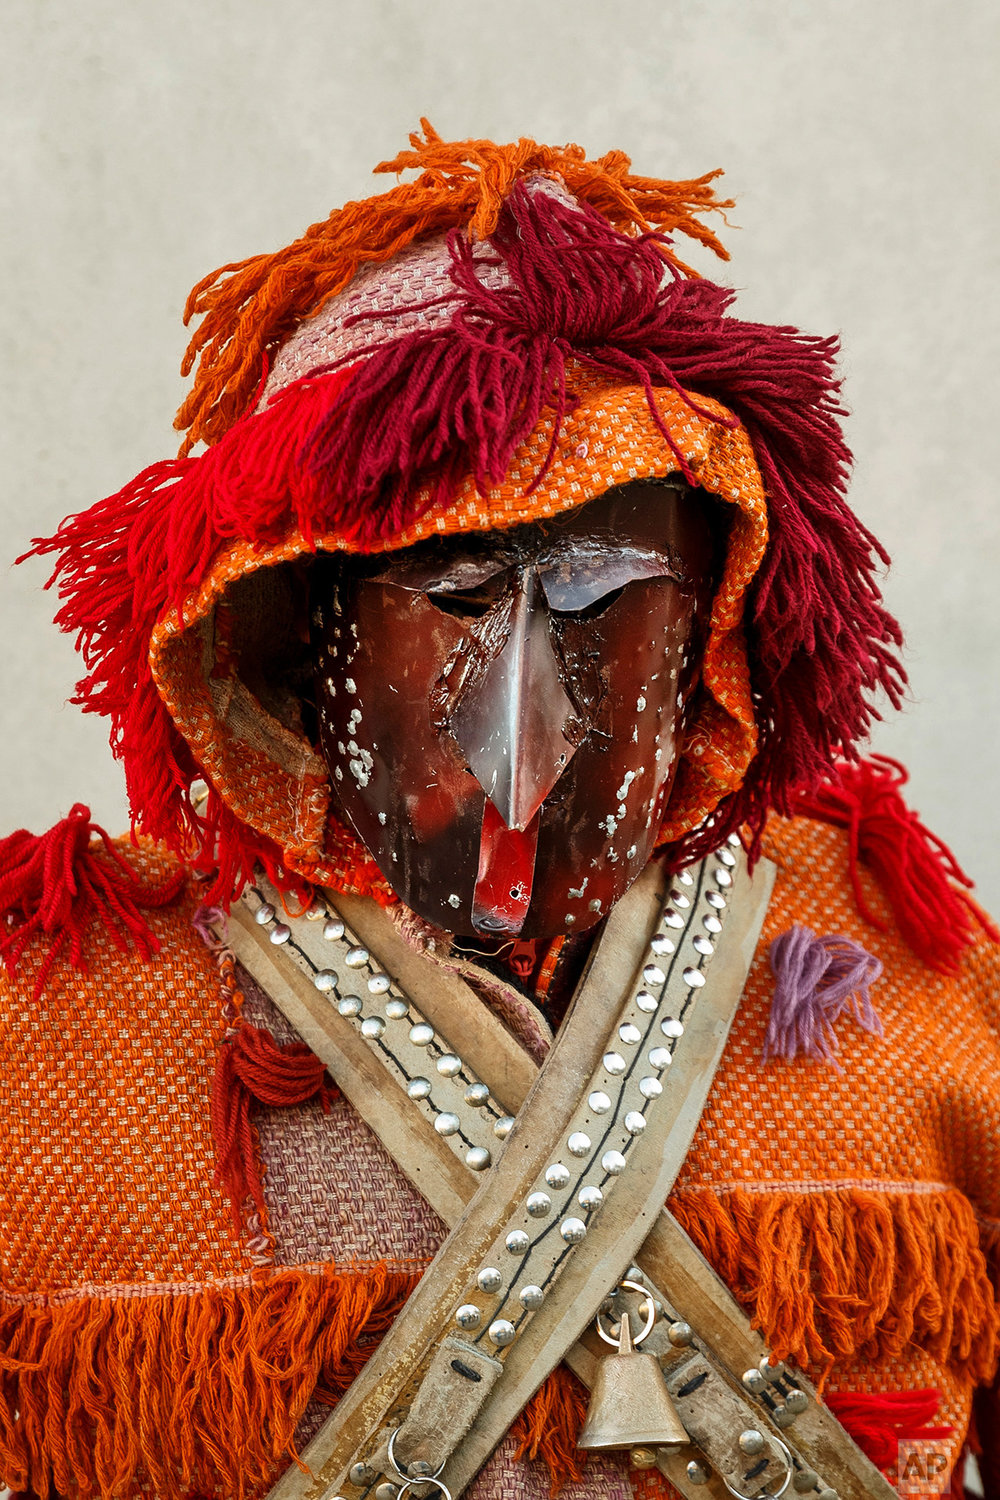 In this photo taken on Saturday, Jan. 7, 2017, a person dressed as a character from the 'Careto de Salsas' masquerade wearing an ancient mask poses for a photo, during a winter masquerade gathering in Salsas, Portugal. (AP Photo/Daniel Ochoa de Olza)